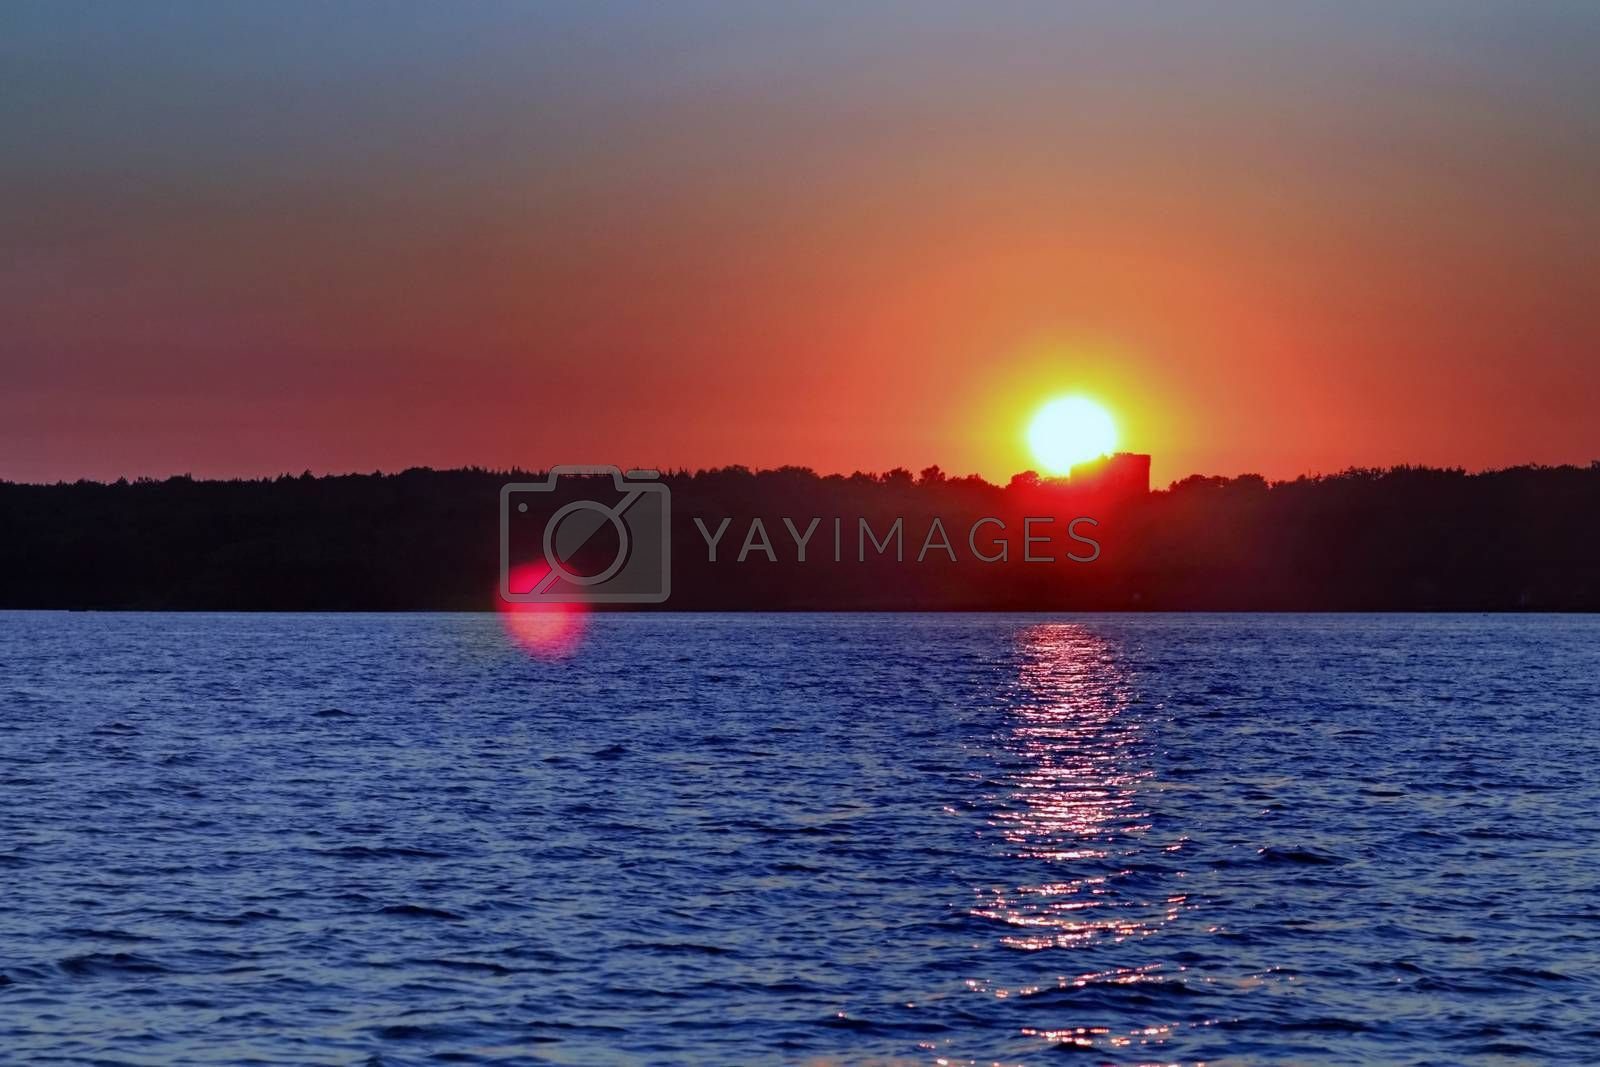 Royalty free image of evening sunset by victorych